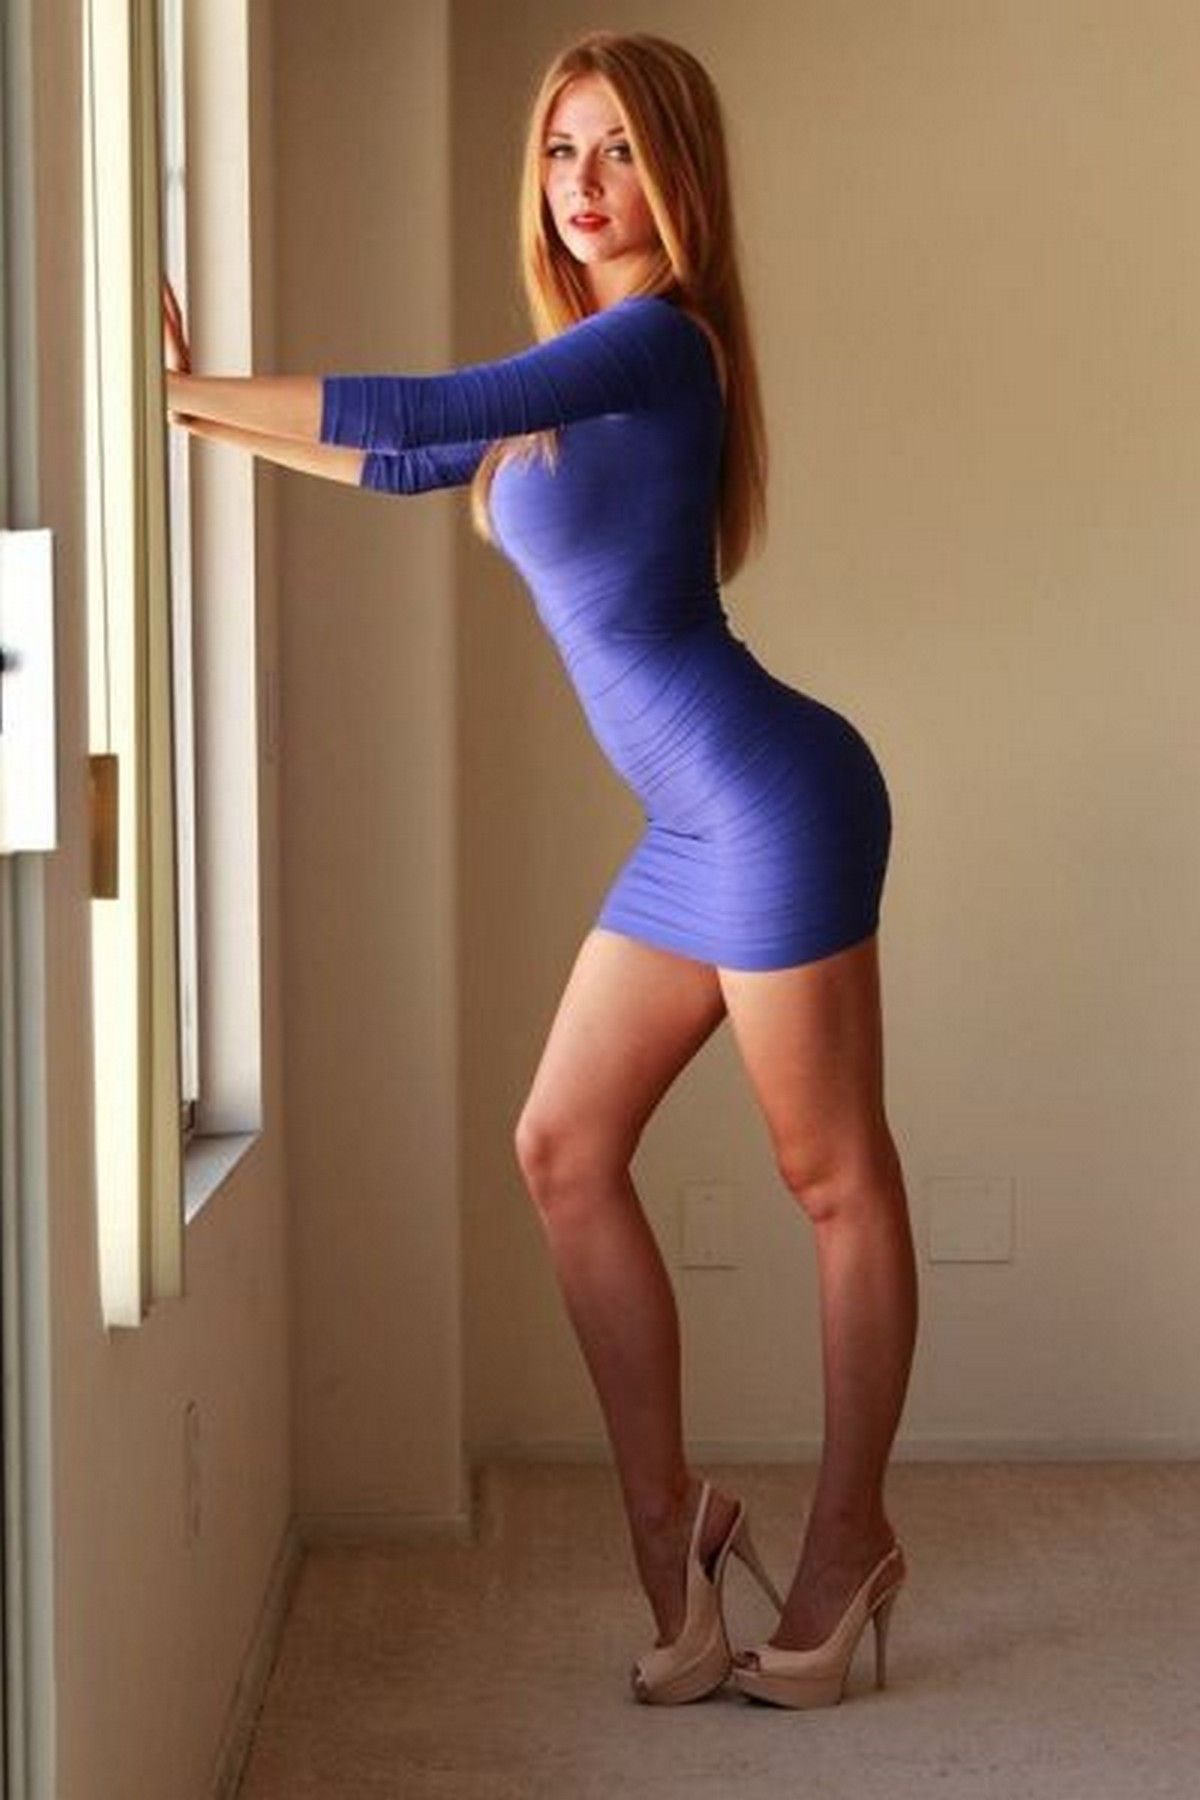 30 hot girls in tight dresses – best thing you'll see today ...